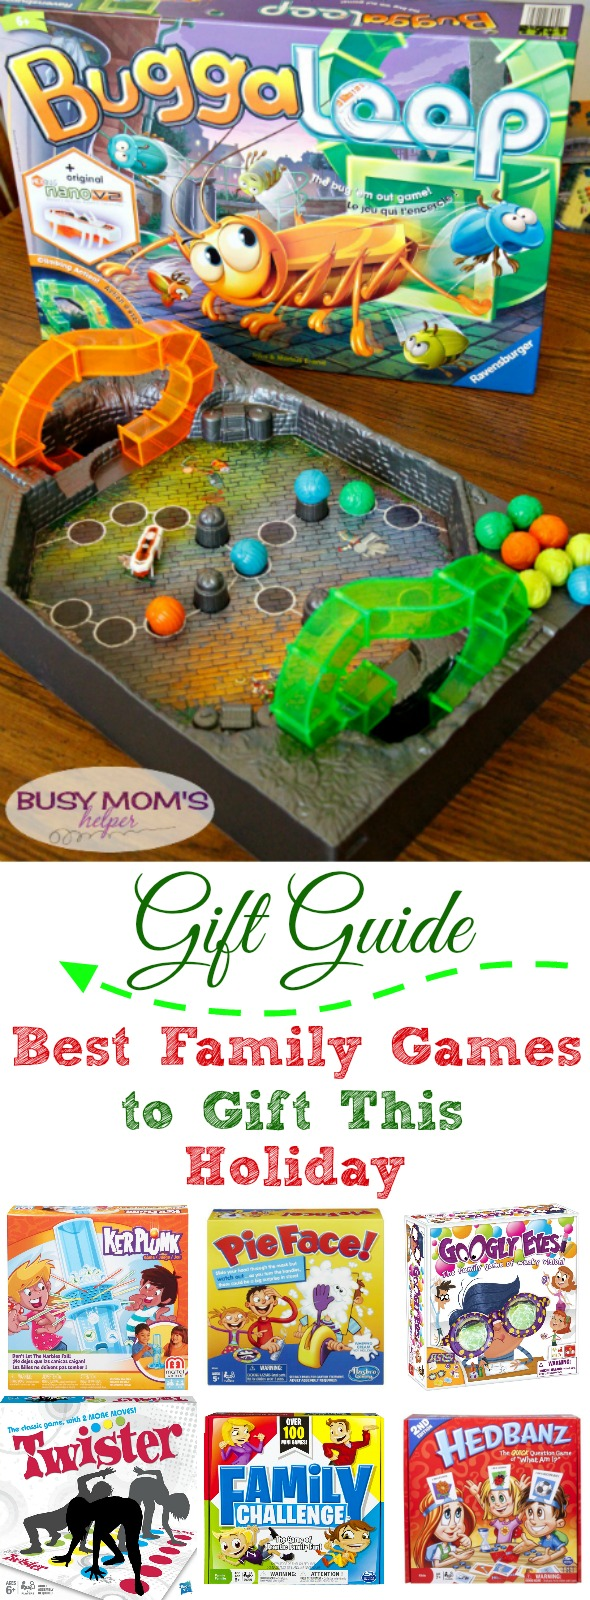 Gift Guide: Best Family Games to Gift This Holiday (with convenient affiliate links)